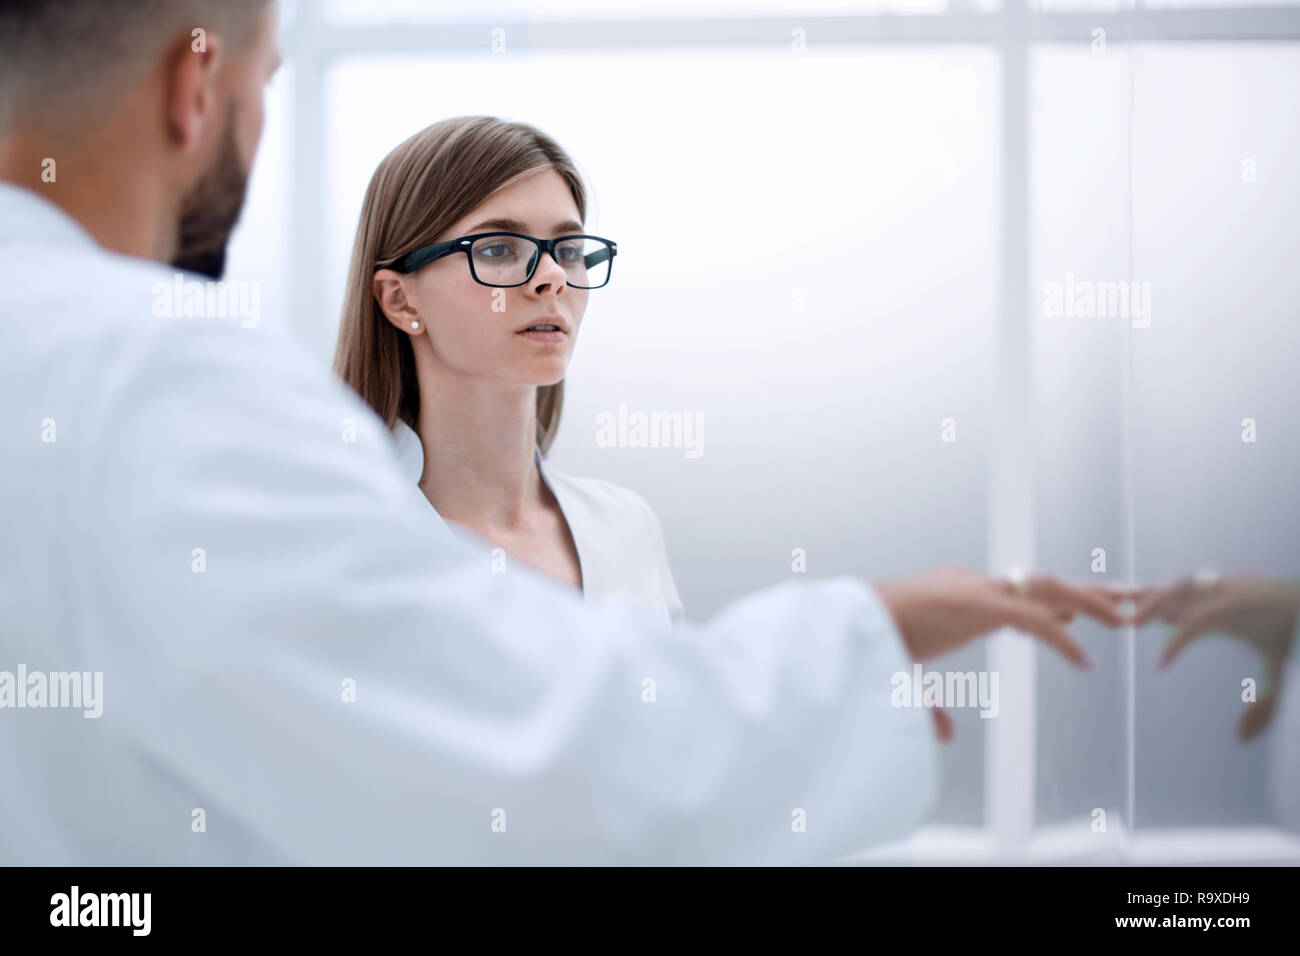 A busy team of experts in forensic science. - Stock Image